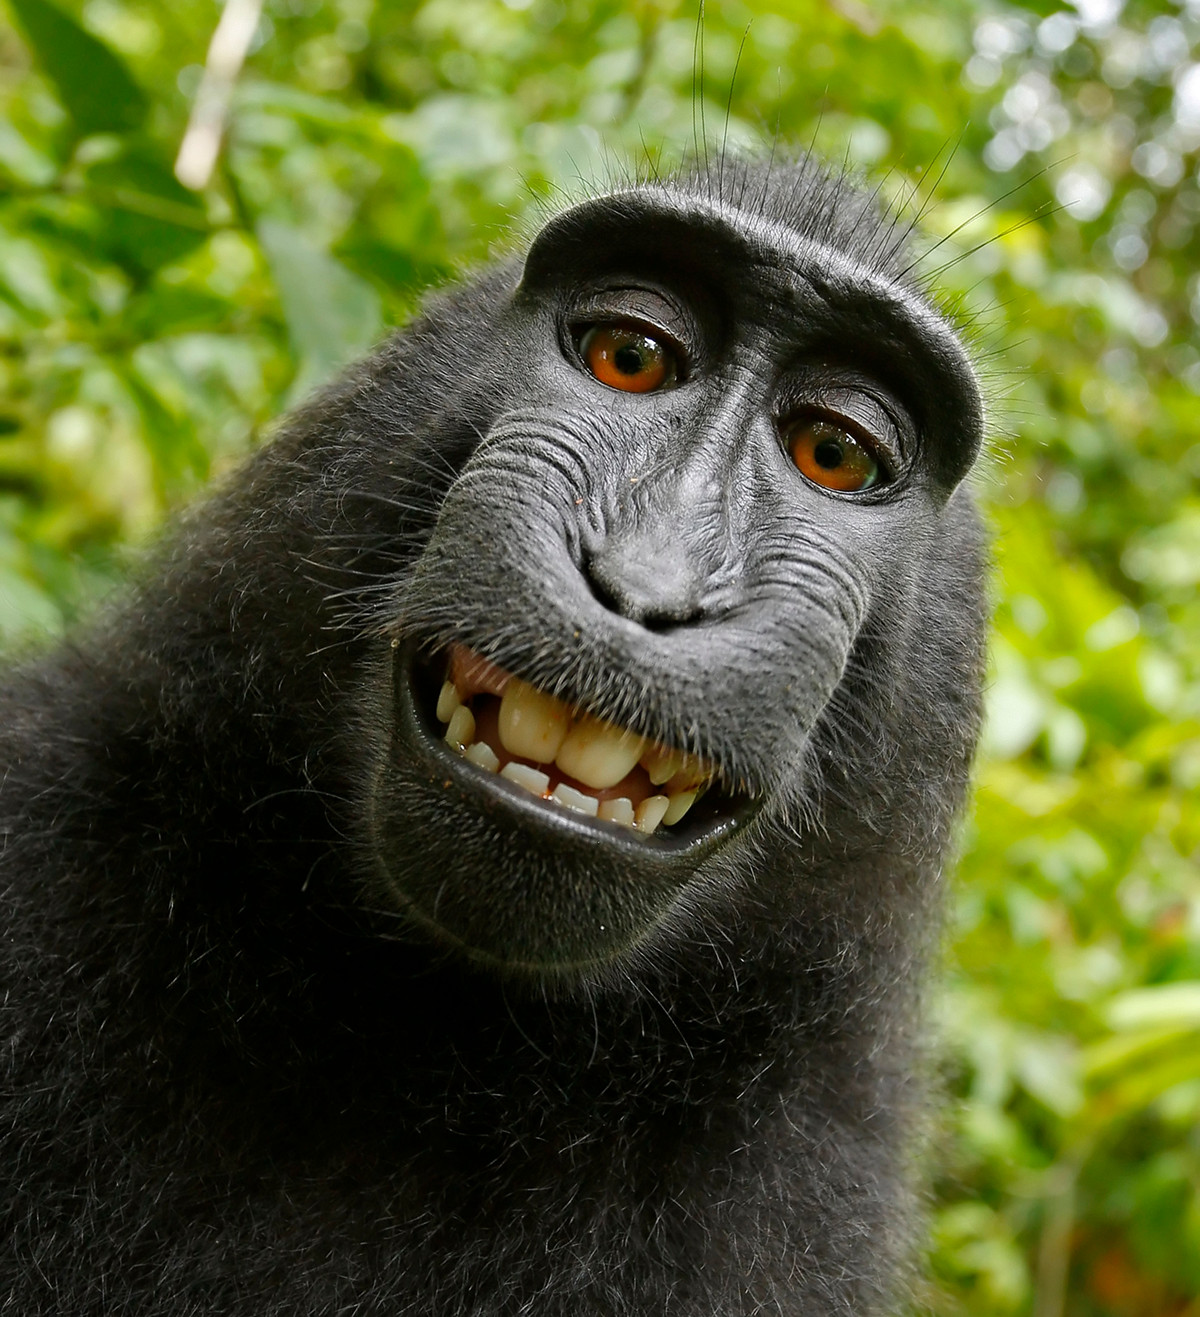 Self-portrait of a female Celebes crested macaque (Macaca nigra) in North Sulawesi, Indonesia, who had picked up photographer David Slater's camera and photographed herself with it. Via Wikipedia. PD